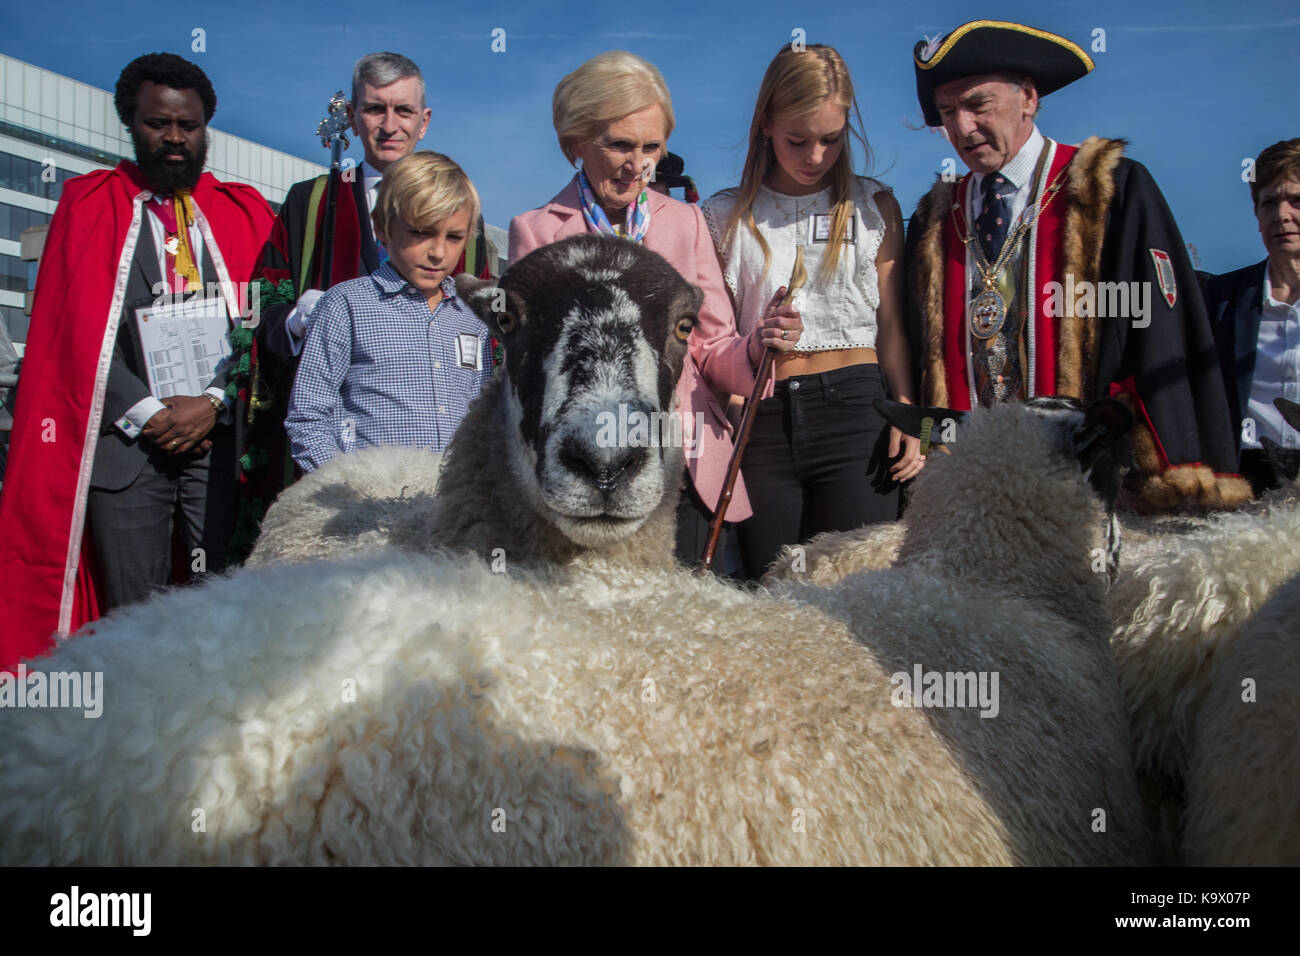 London, UK. 24 September 2017. Celebrity chef Mary Berry joins Freeman of the City of London driving sheep over Stock Photo